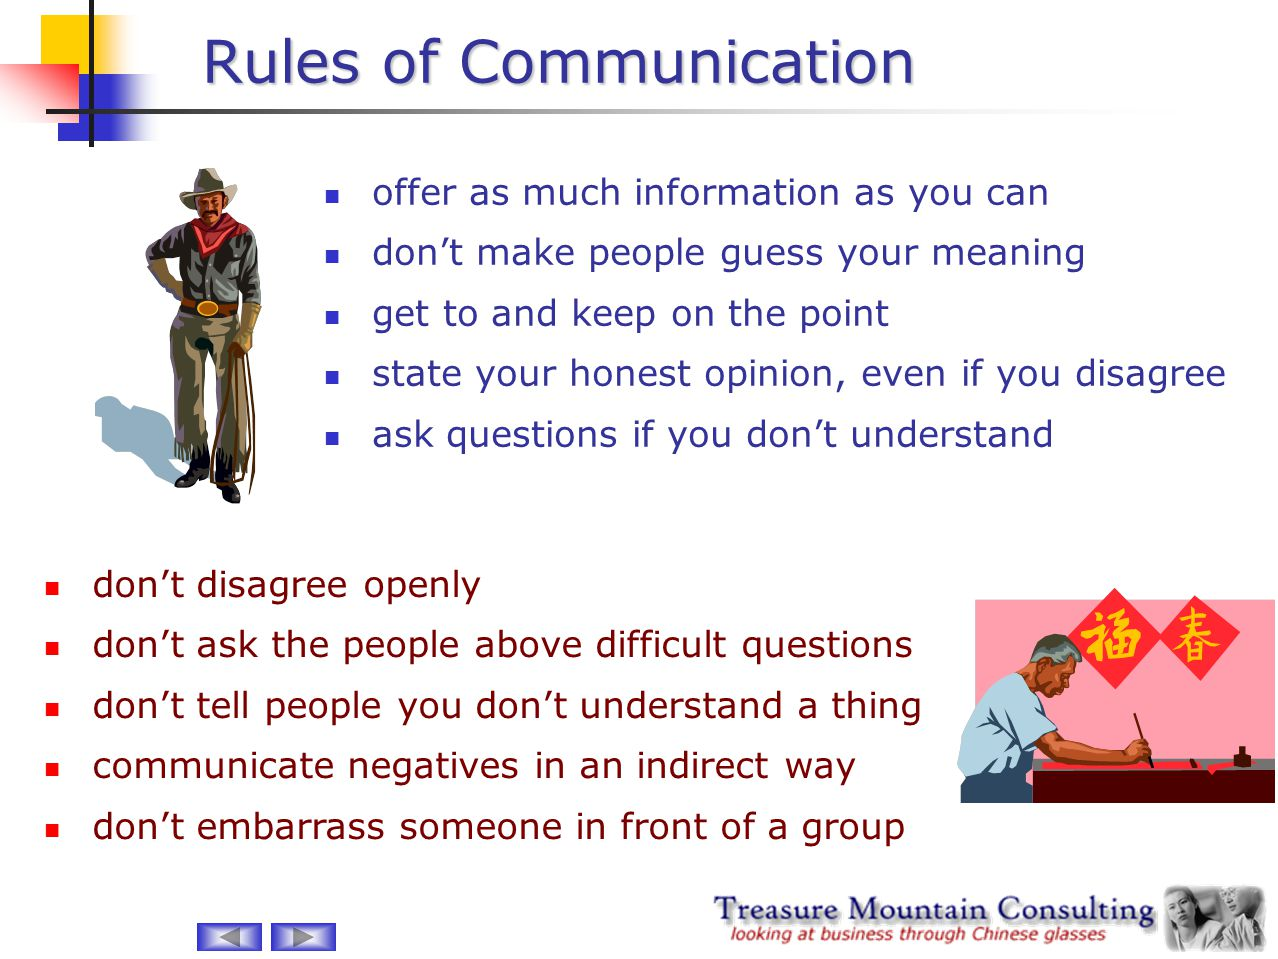 Rules of Communication